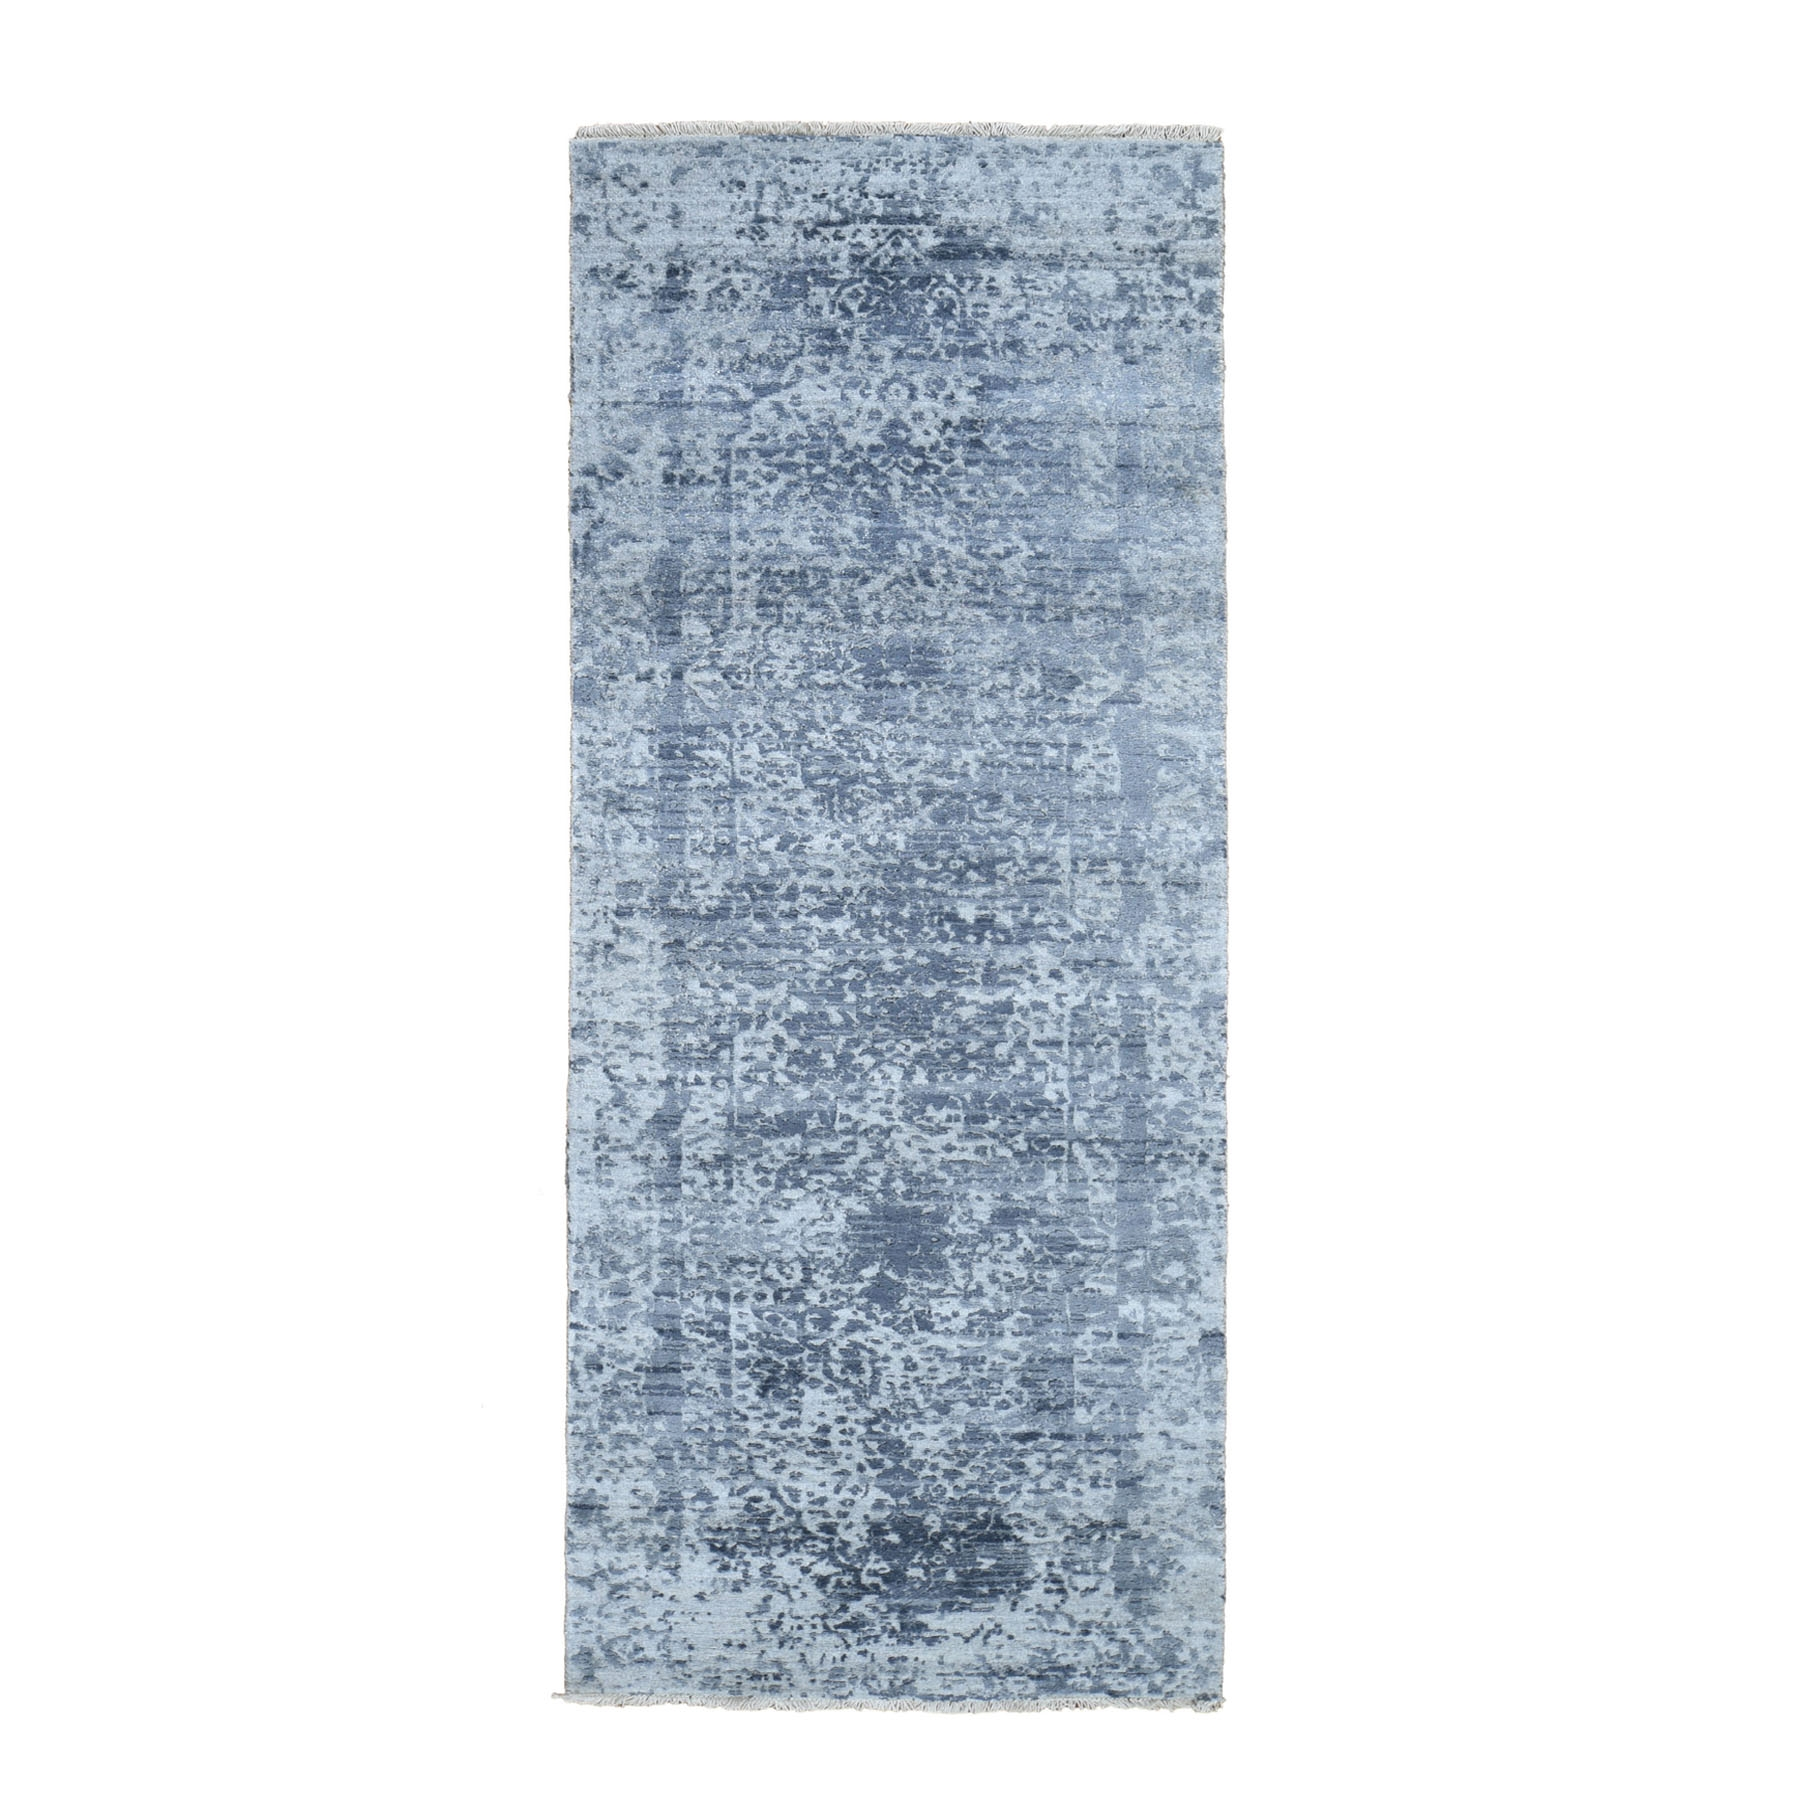 "2'7""x7'10"" Hand-Knotted Broken Persian Design Wool And Pure Silk Grey Oriental Runner Rug"